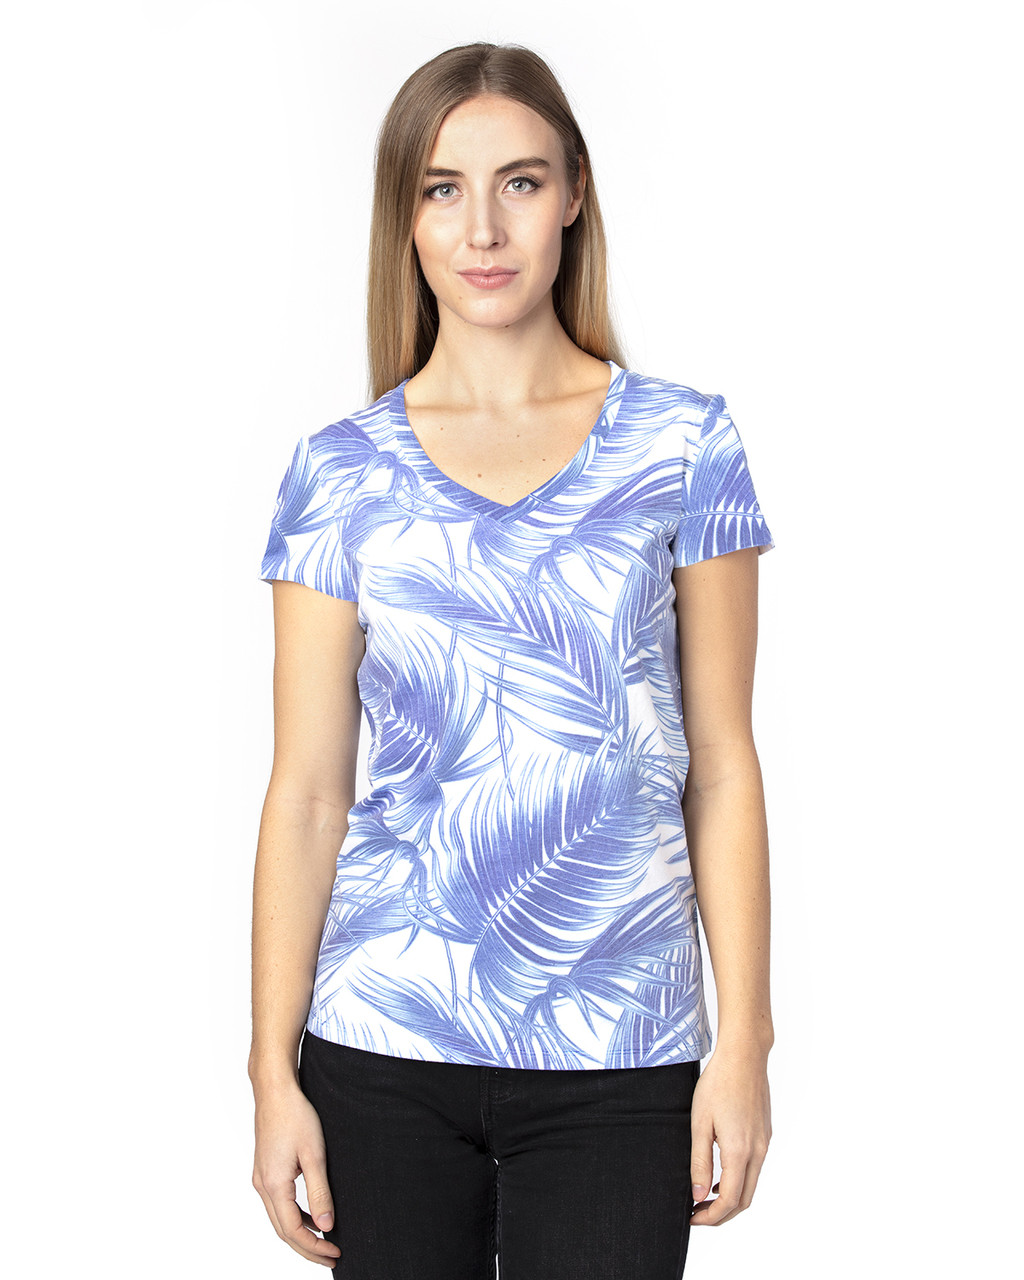 Palm Paradise - 200RV Threadfast Ladies' Ultimate Short-Sleeve V-Neck T-Shirt | BlankClothing.ca